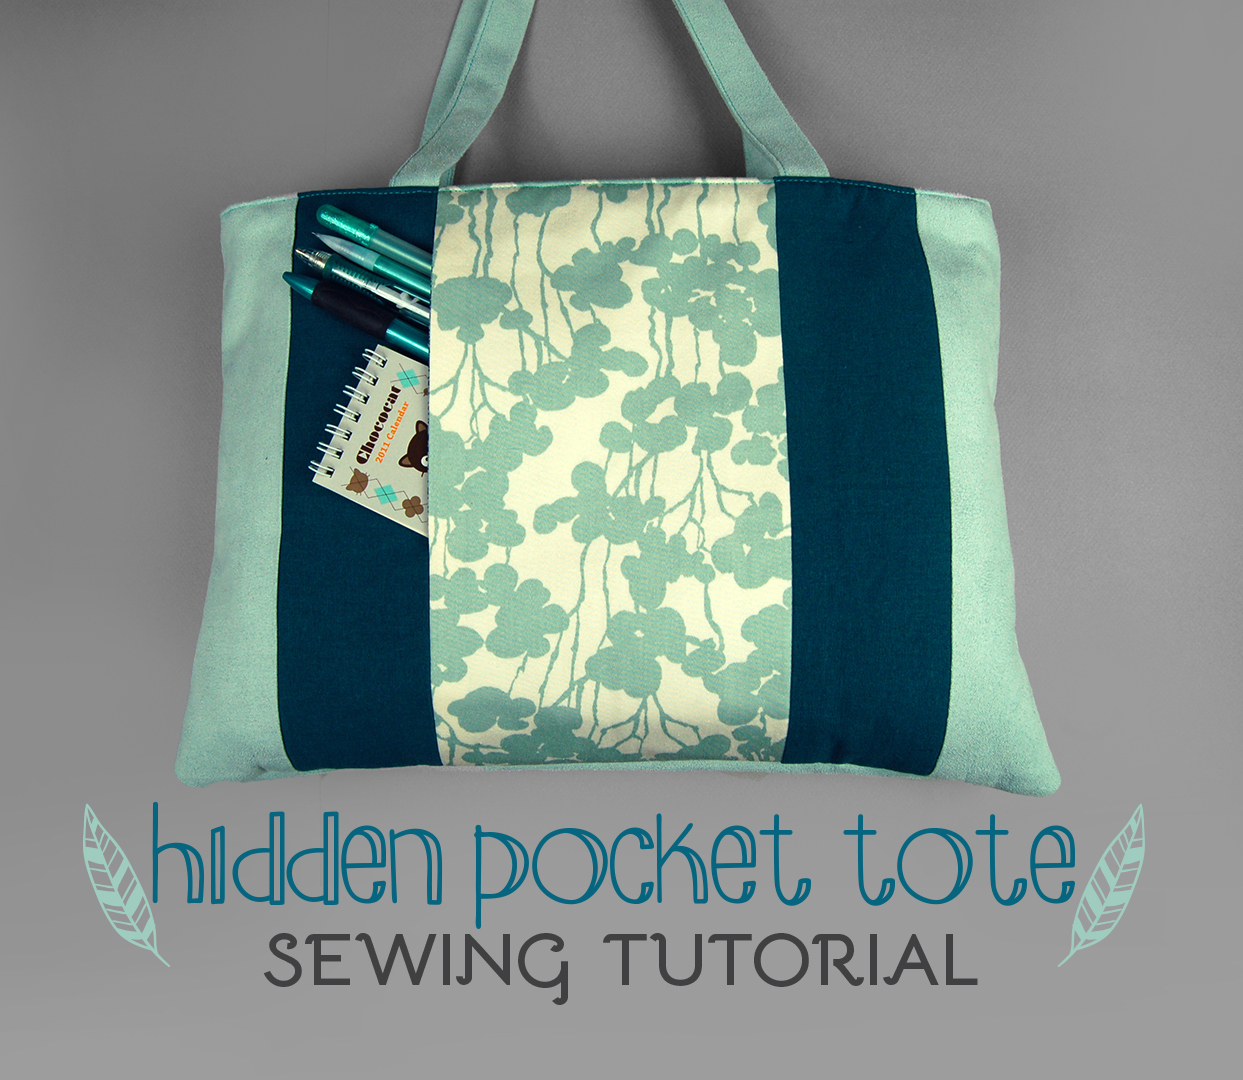 Sewing Tutorial - The Hidden Pocket Tote by SewDesuNe